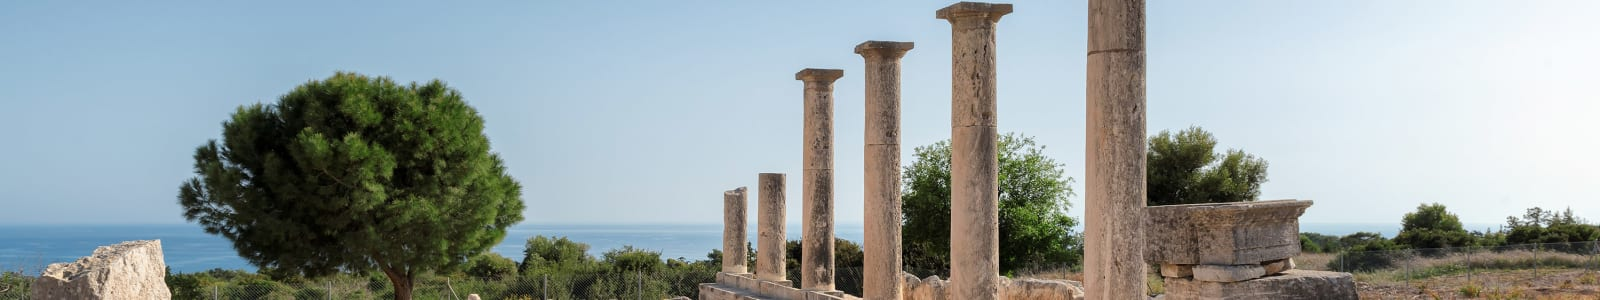 Ancient Kourion in Limassol